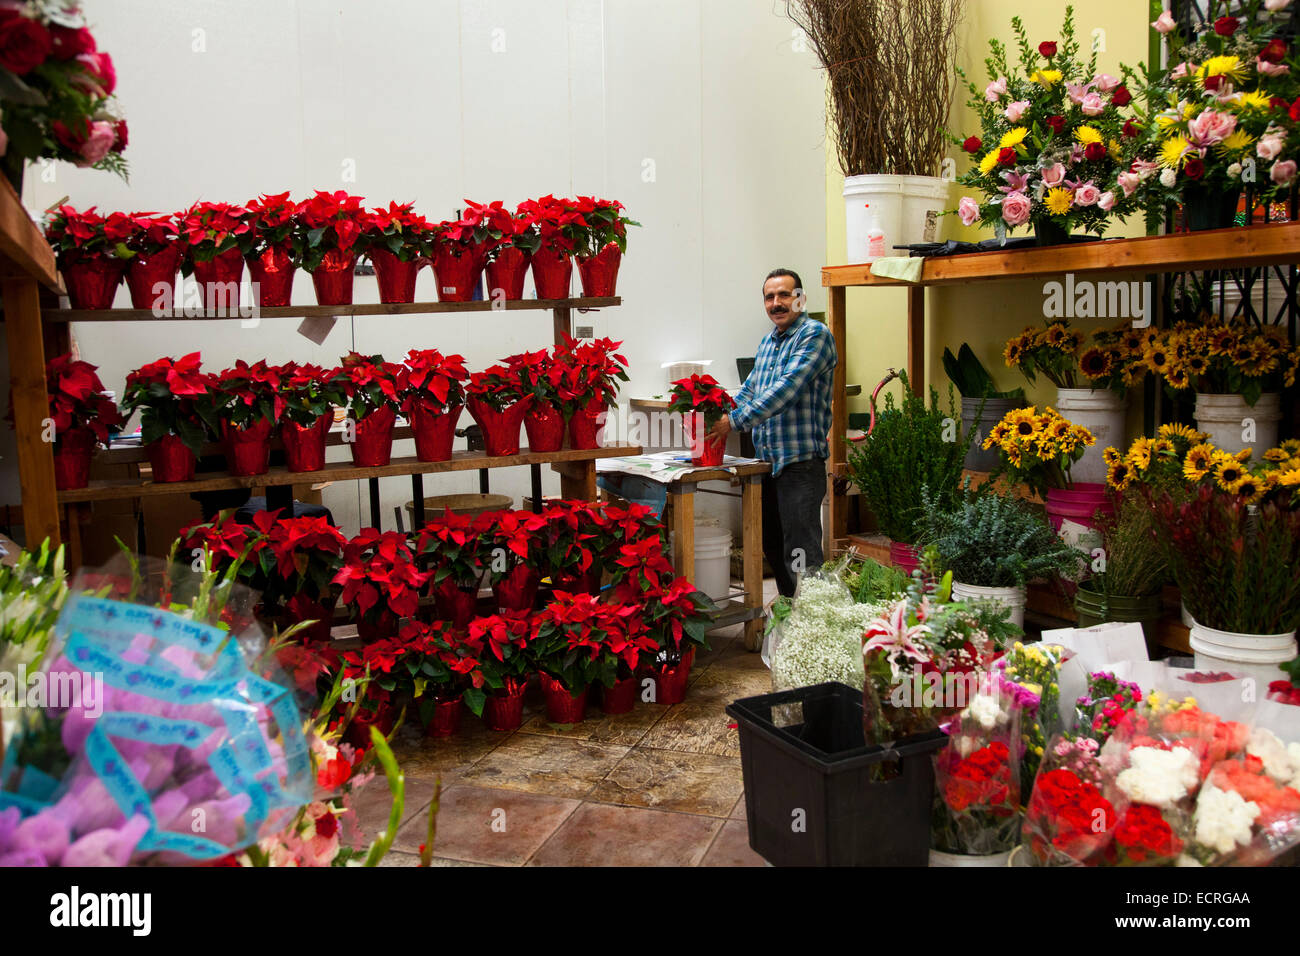 The Flower Mart Downtown Los Angeles California United States Of